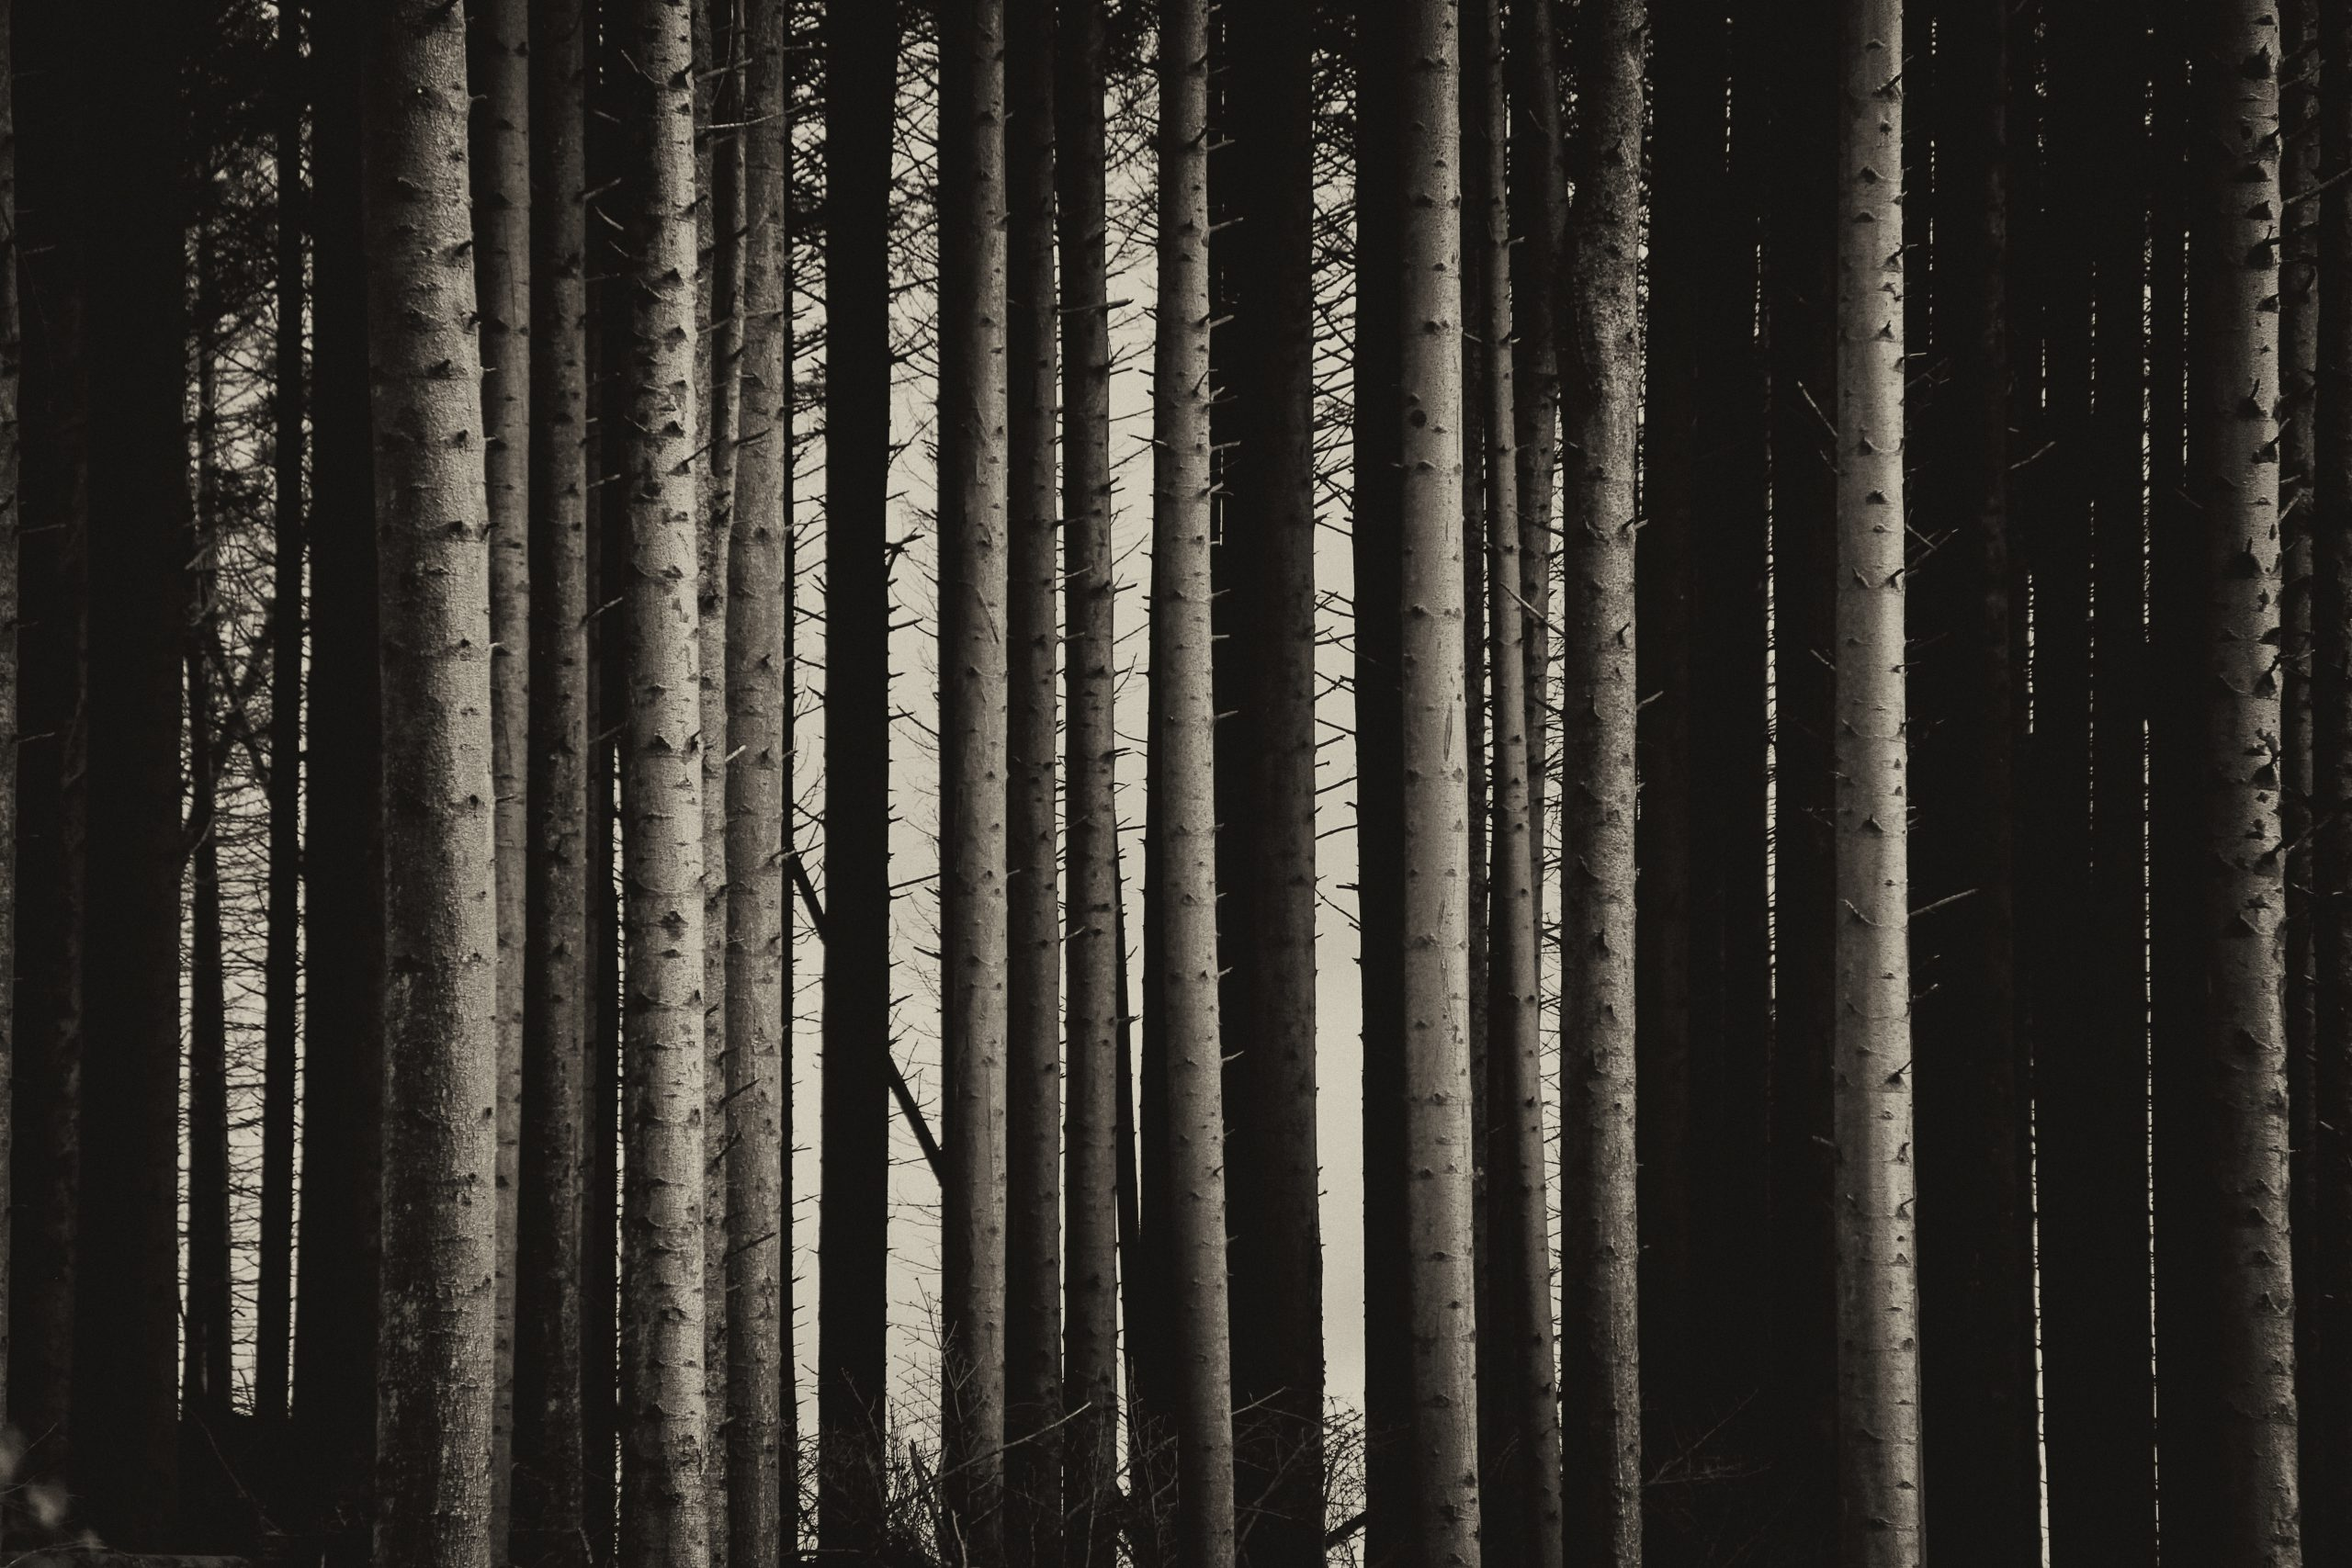 Norwegian Wood | The charm in simplicity